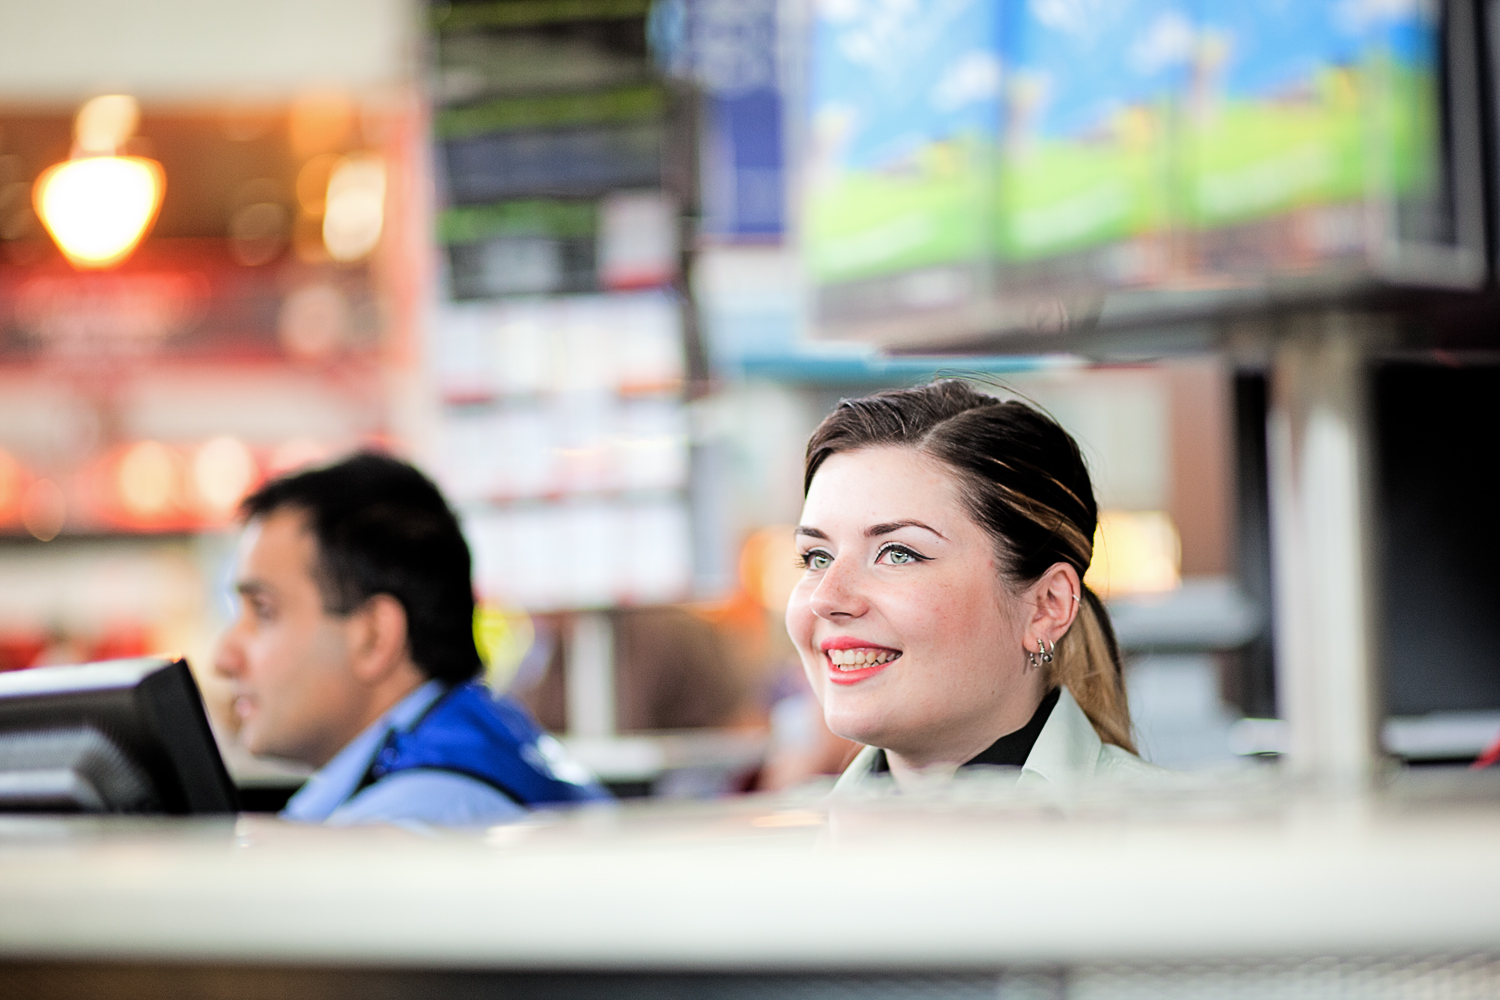 Go-Ahead Euston